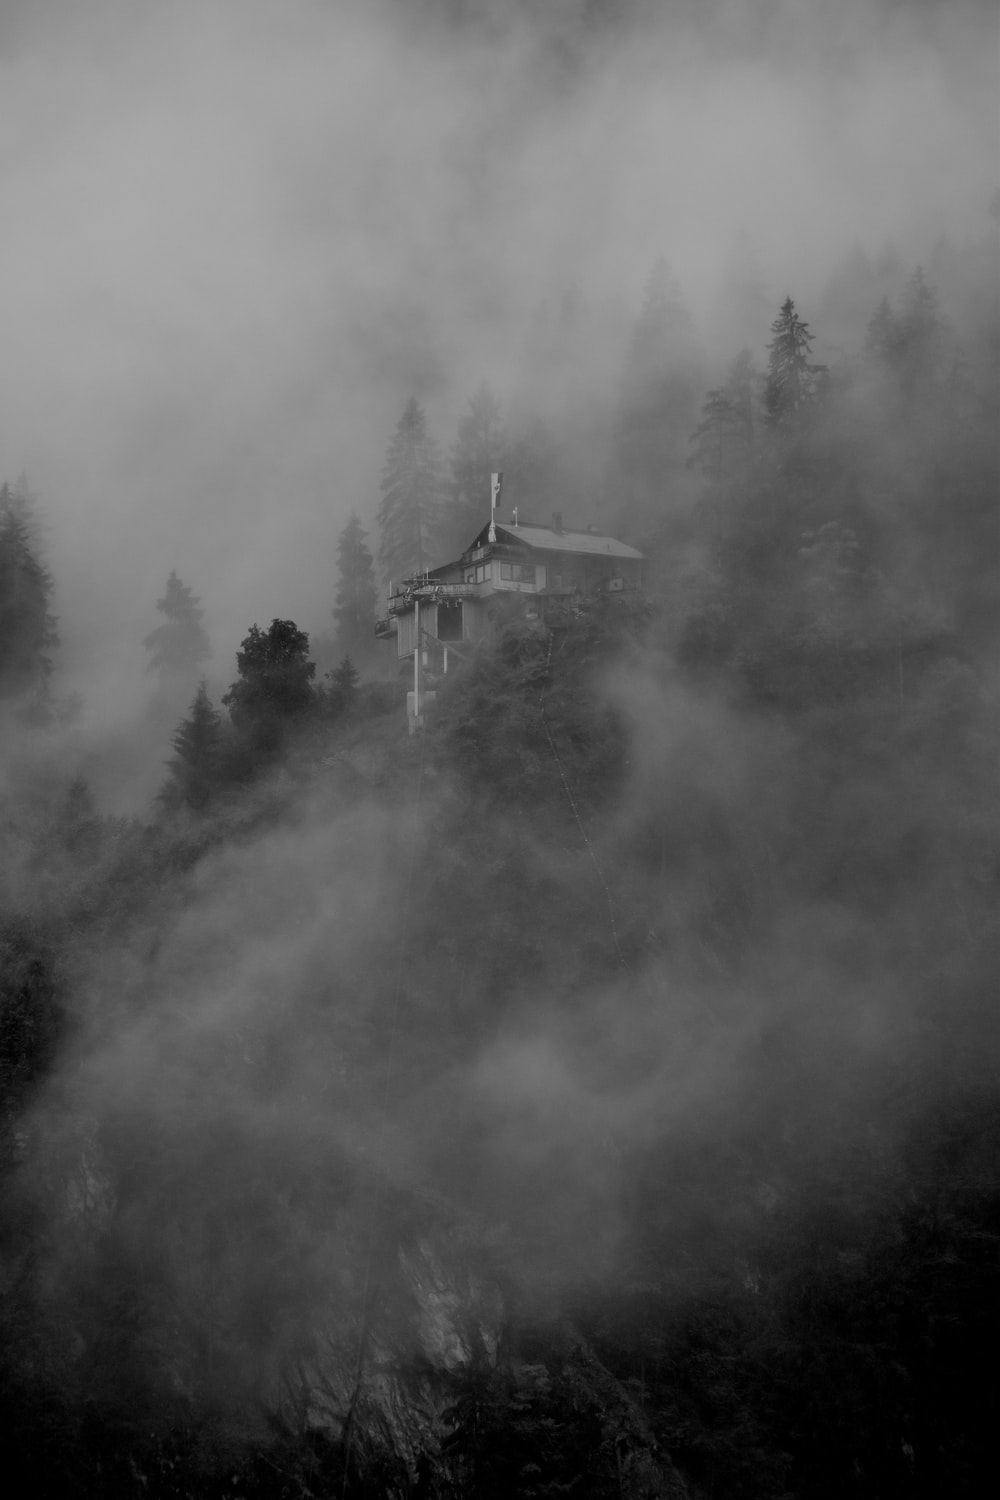 grayscale photography of foggy forest